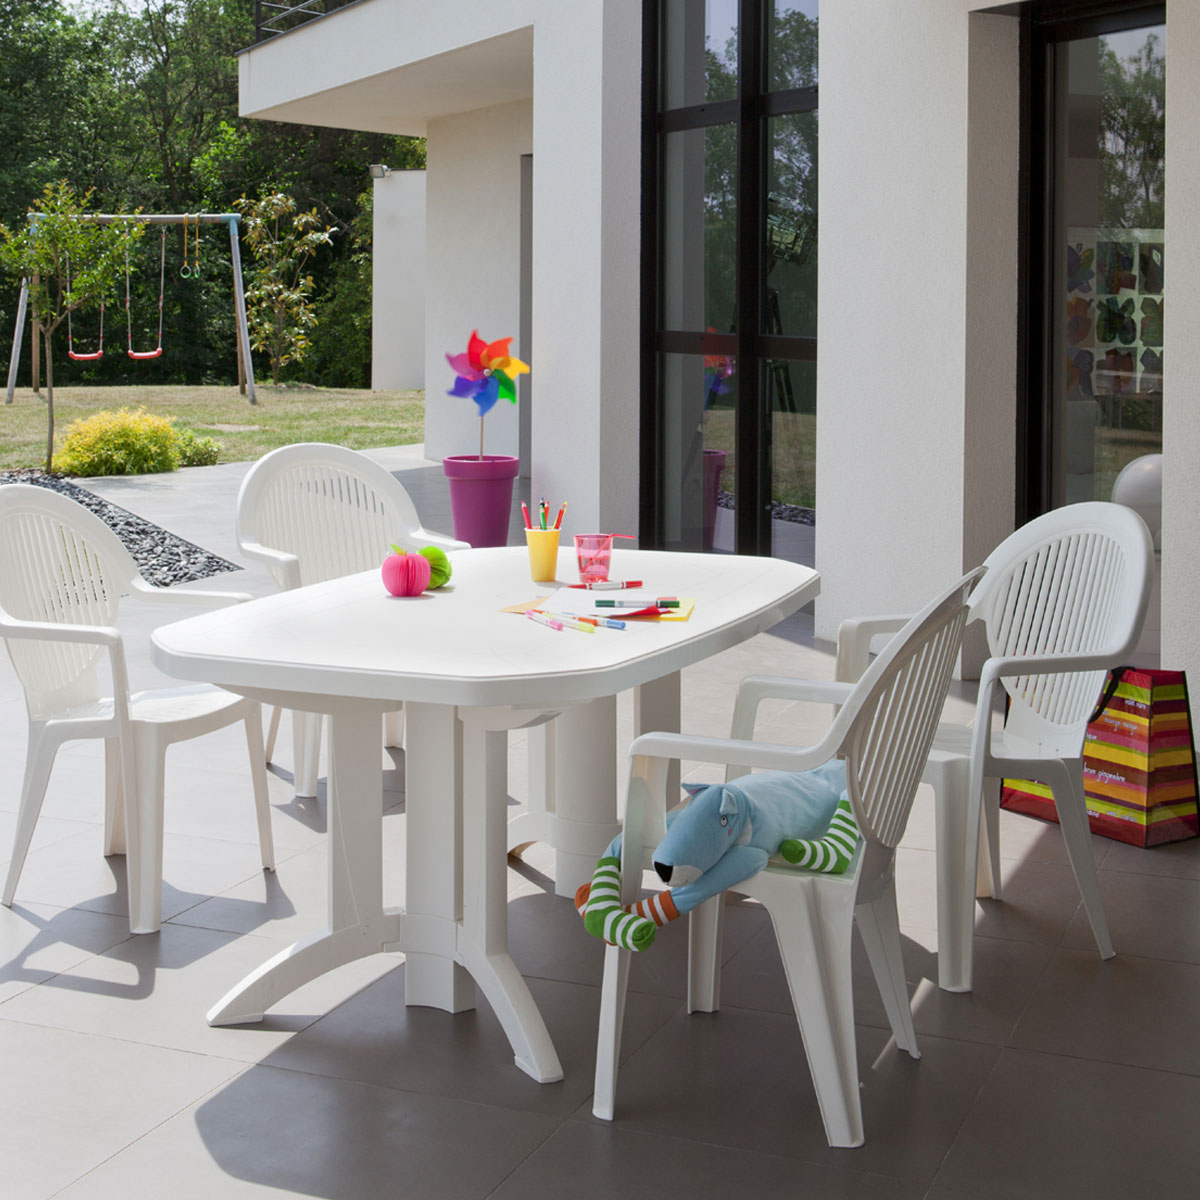 Emejing Table De Jardin Grosfillex Pliable Pictures Awesome Interior Home Satellite